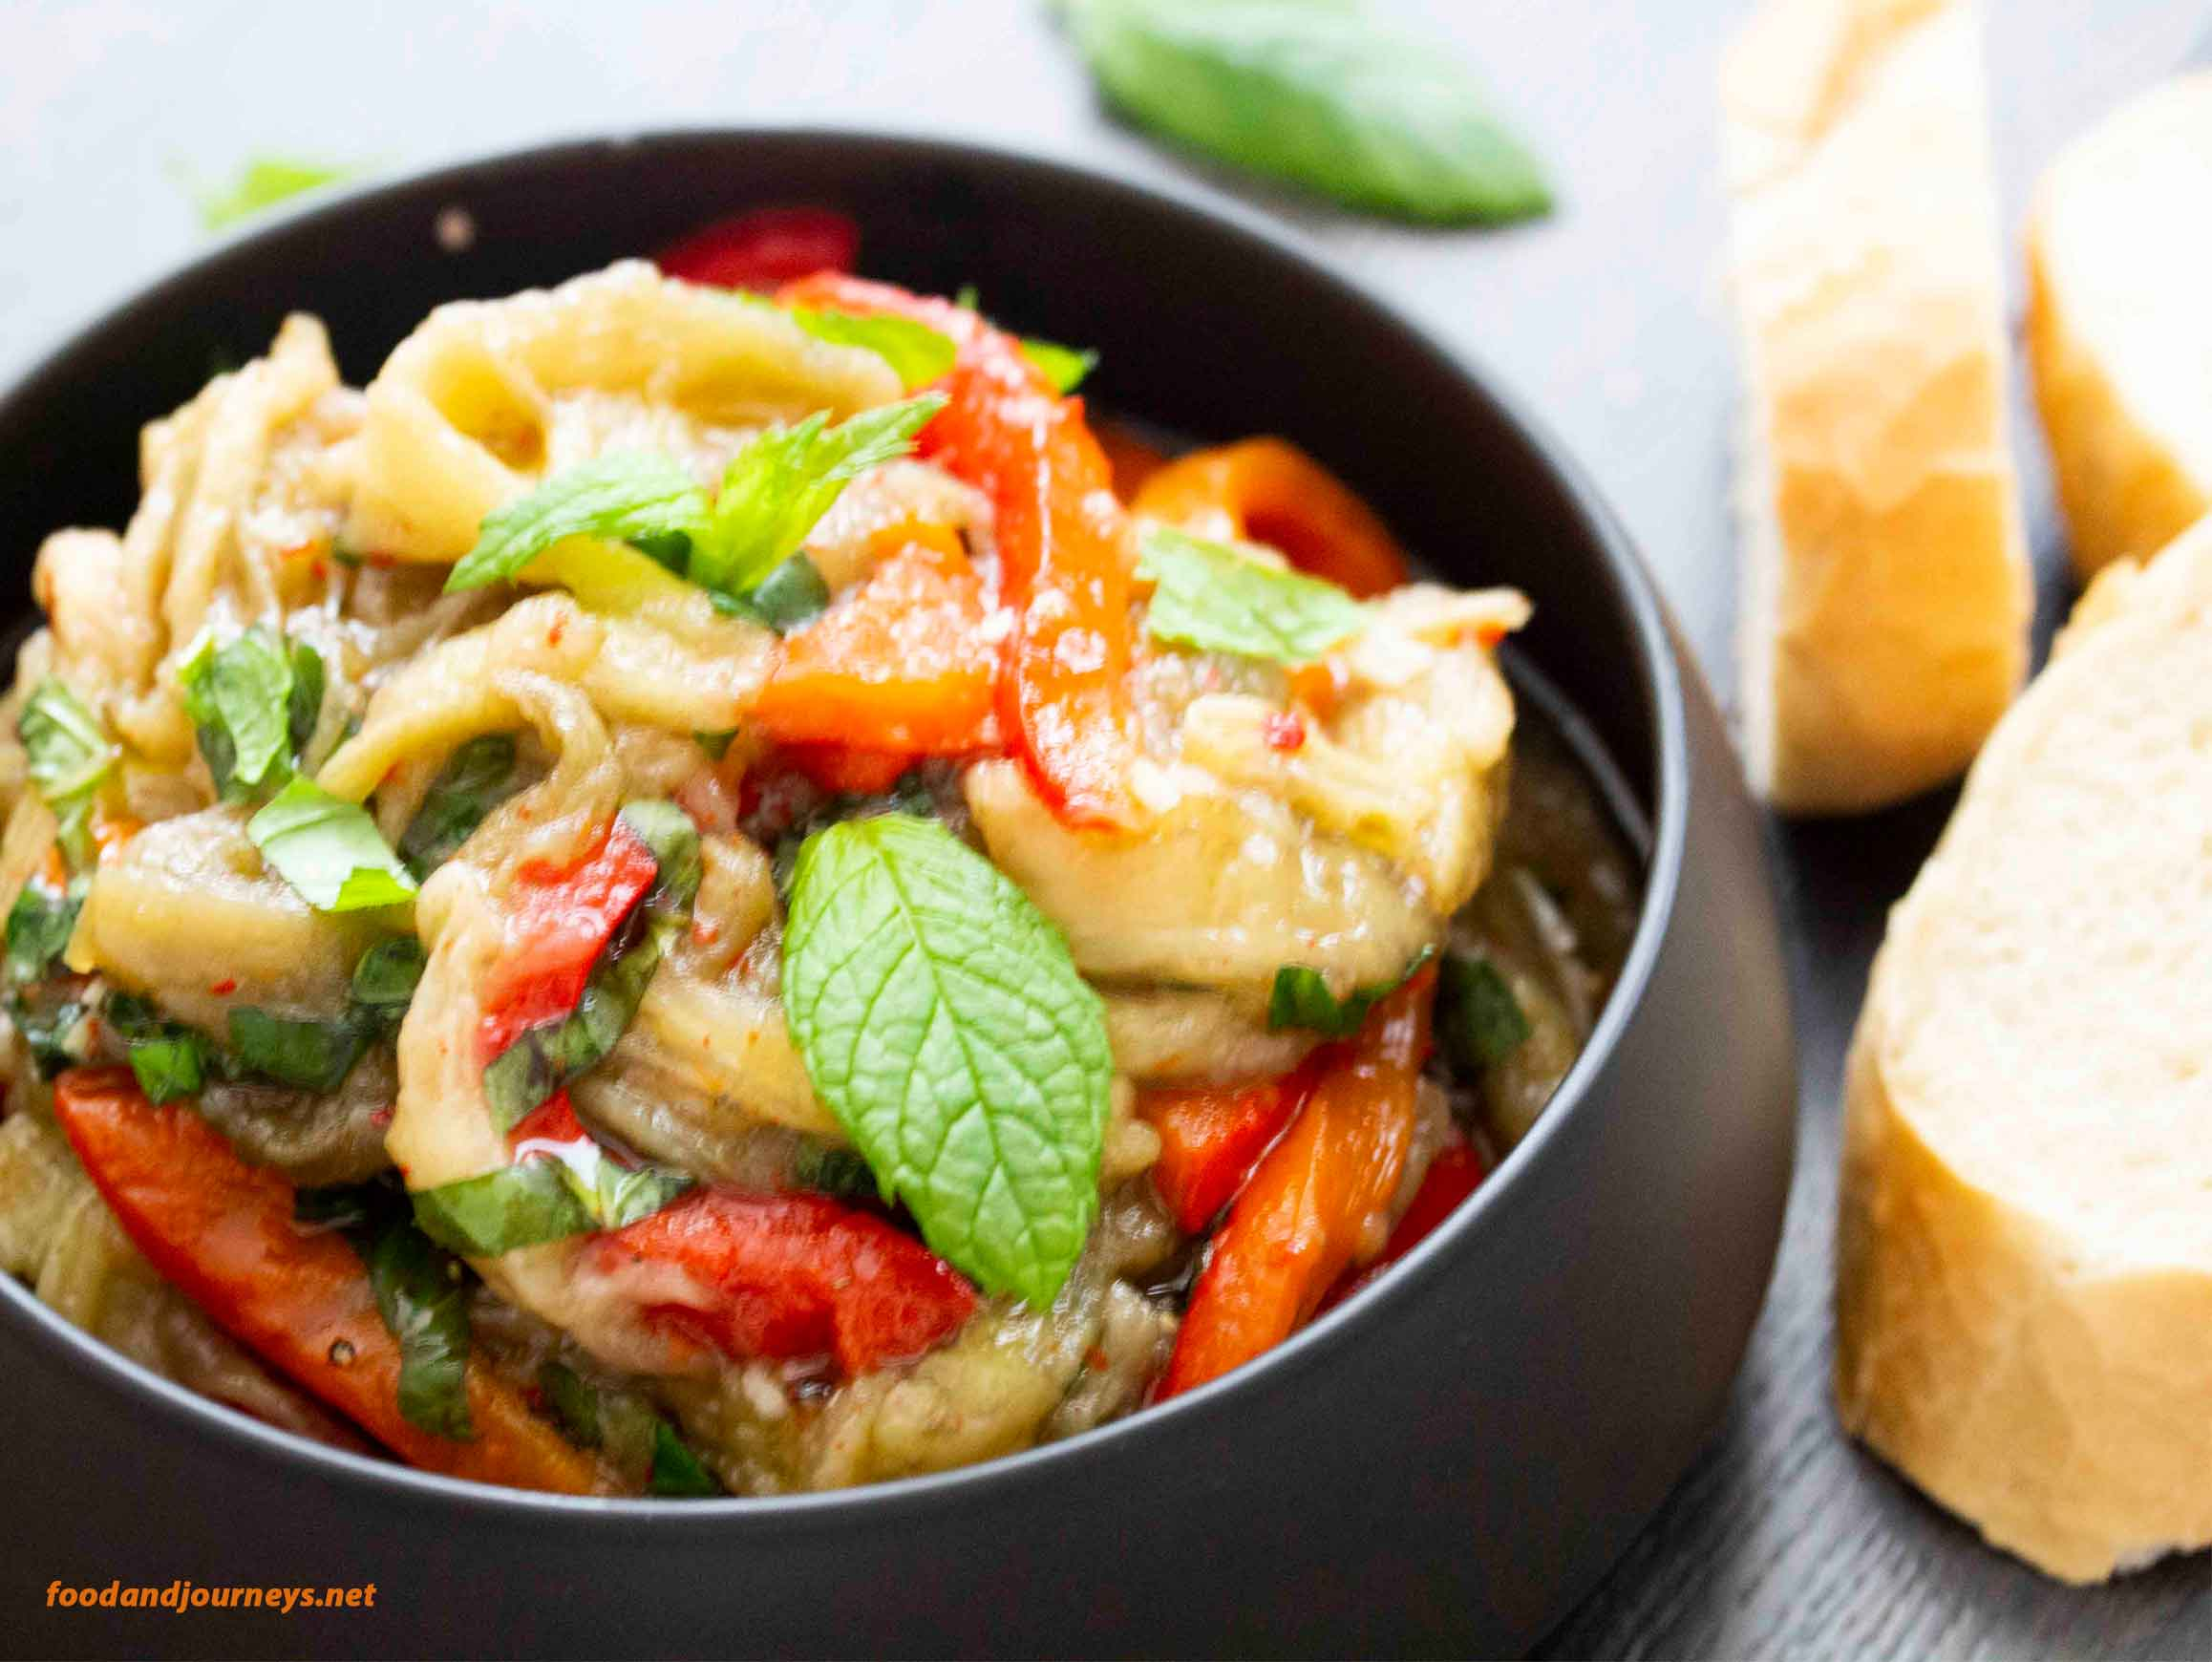 Spanish Marinated Eggplant & Peppers in a serving bowl, with slices of bread on the side